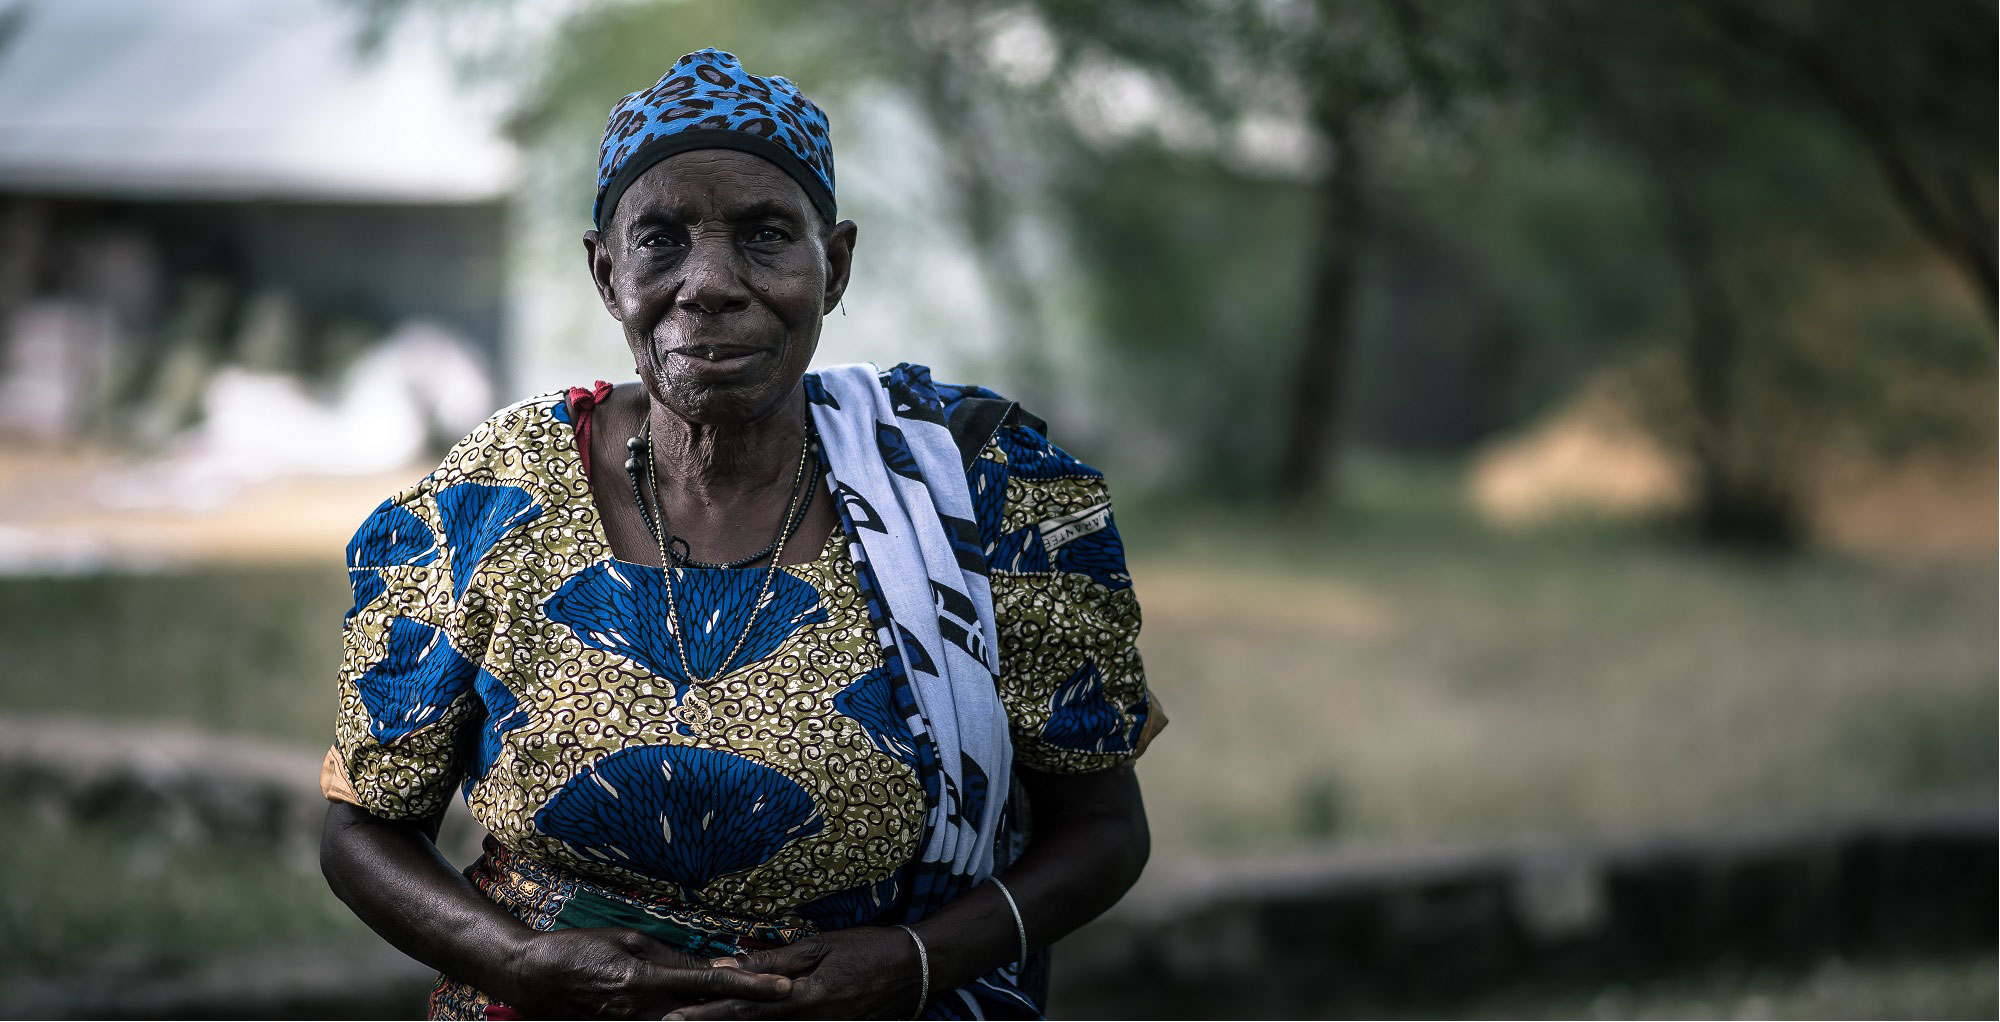 Older women in Mwanza are being taught about their human rights, particularly in relation to land (c) Clemence Eliah/HelpAge International